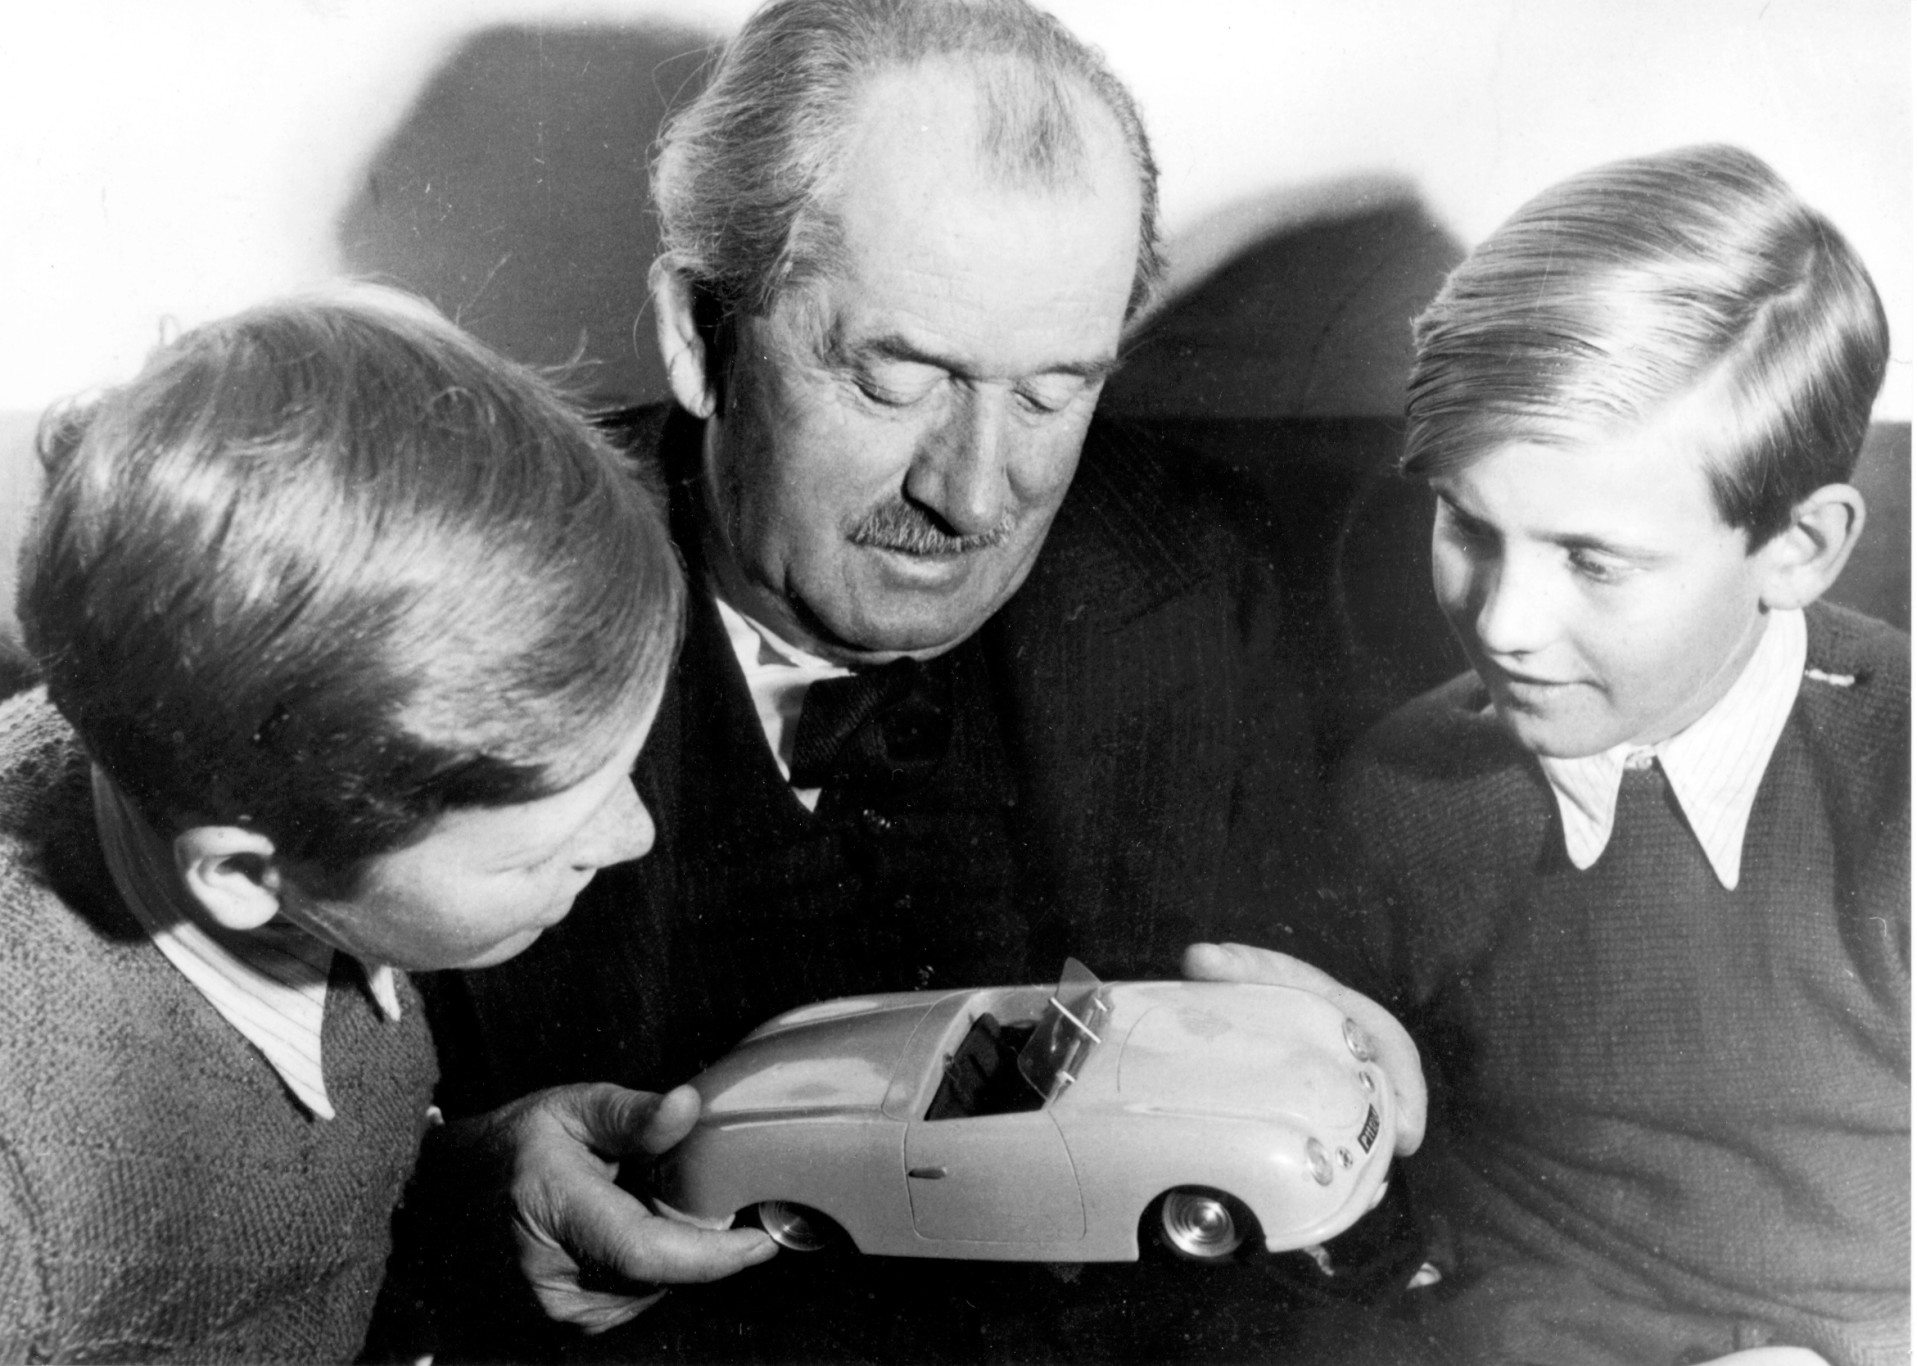 Ferdinand Porsche with two of his grandchildren